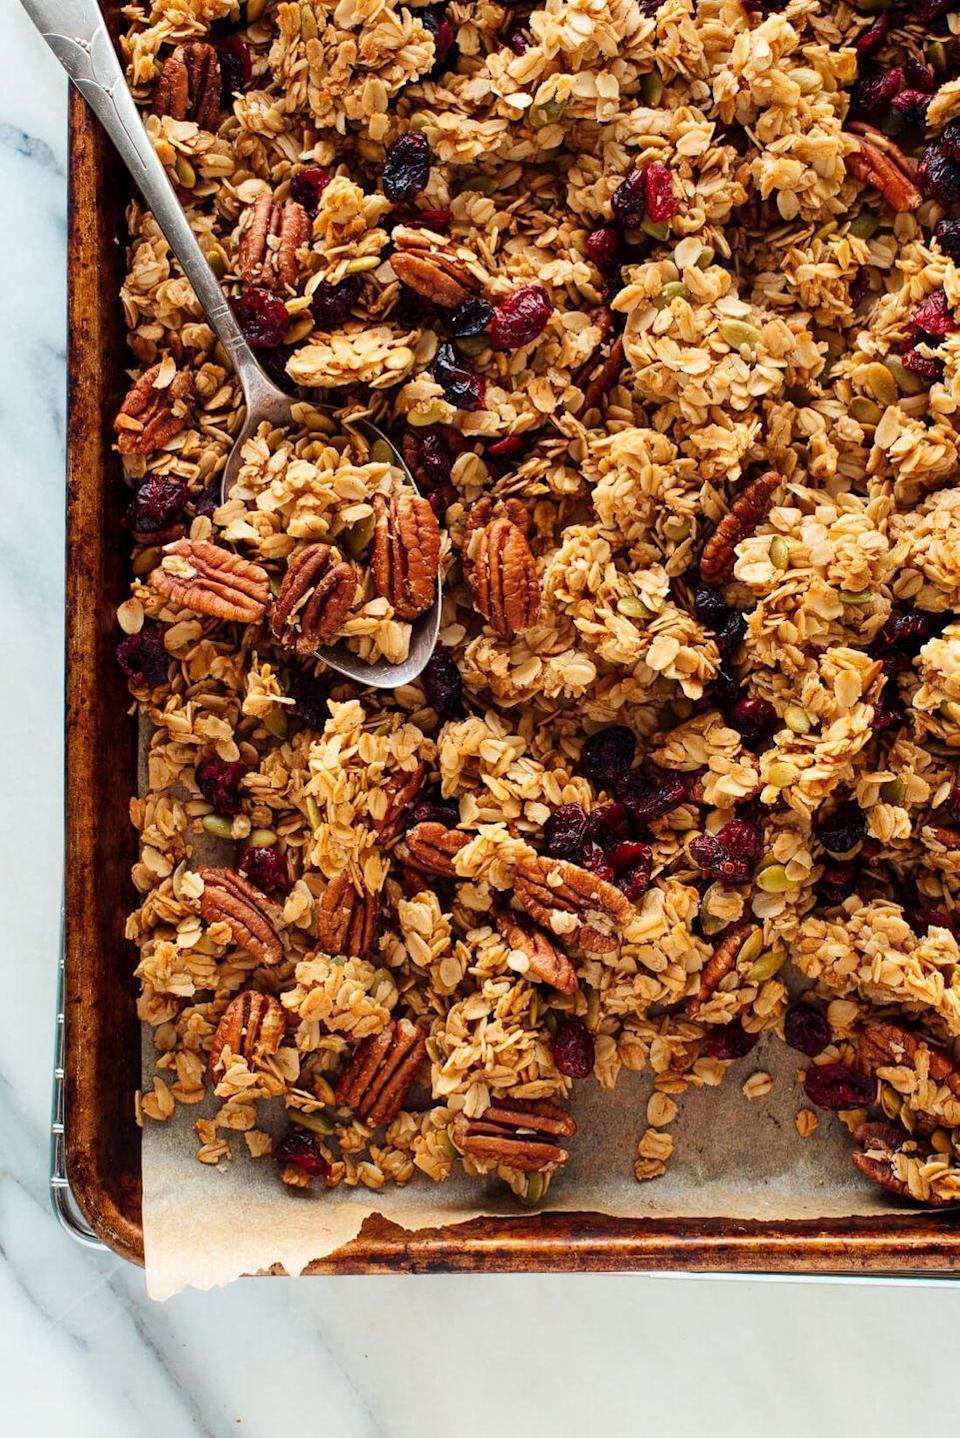 """<p>Make the most of your pantry items with this homemade granola. You can use whatever nuts, seeds, or dried fruits you have on hand—it's easy to customize! Serve it up with Greek yogurt and fresh fruit.</p><p><strong>Get the recipe at <a href=""""https://cookieandkate.com/healthy-granola-recipe/"""" rel=""""nofollow noopener"""" target=""""_blank"""" data-ylk=""""slk:Cookie + Kate"""" class=""""link rapid-noclick-resp"""">Cookie + Kate</a>.</strong></p><p><strong><a class=""""link rapid-noclick-resp"""" href=""""https://go.redirectingat.com?id=74968X1596630&url=https%3A%2F%2Fwww.walmart.com%2Fsearch%2F%3Fquery%3Dpioneer%2Bwoman%2Bkitchen%2Btools&sref=https%3A%2F%2Fwww.thepioneerwoman.com%2Ffood-cooking%2Fmeals-menus%2Fg34922086%2Fhealthy-breakfast-ideas%2F"""" rel=""""nofollow noopener"""" target=""""_blank"""" data-ylk=""""slk:SHOP KITCHEN TOOLS"""">SHOP KITCHEN TOOLS</a><br></strong></p>"""